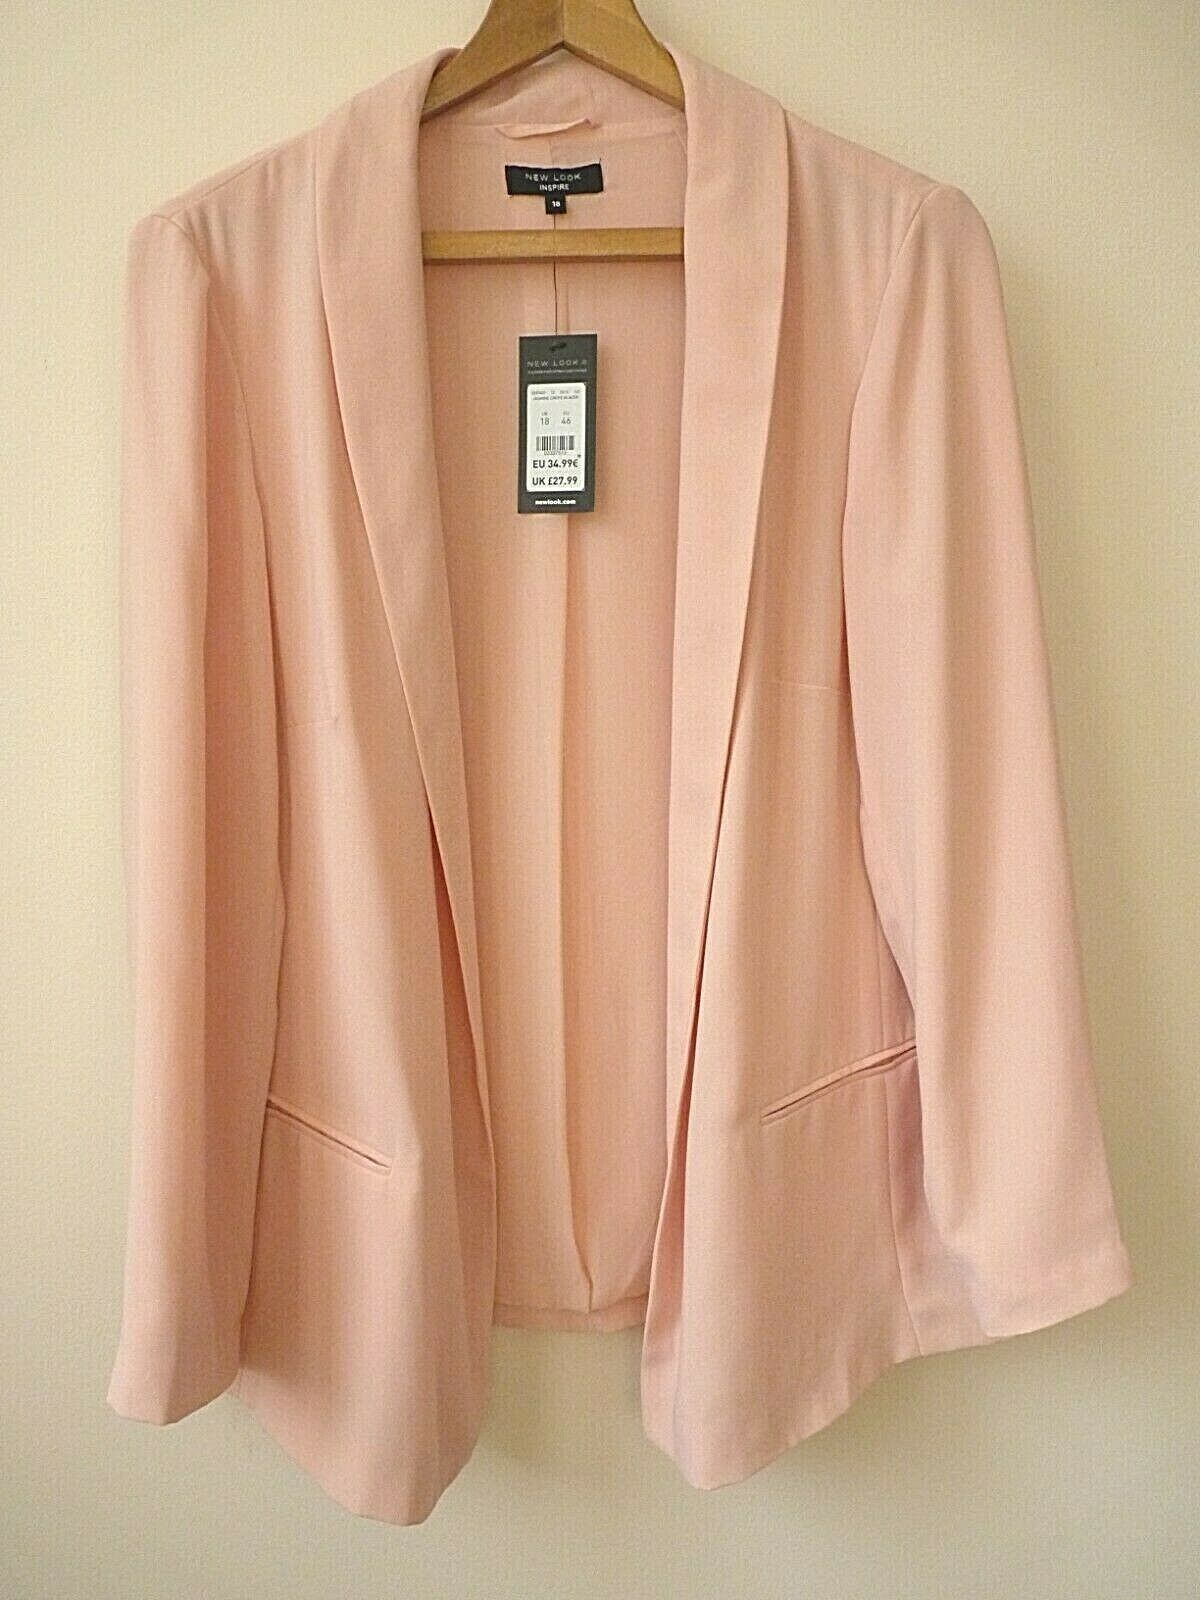 WOMENS EX NEW LOOK INSPIRE PINK CREPE OPEN LINED BLAZER JACKET CURVES 18-28